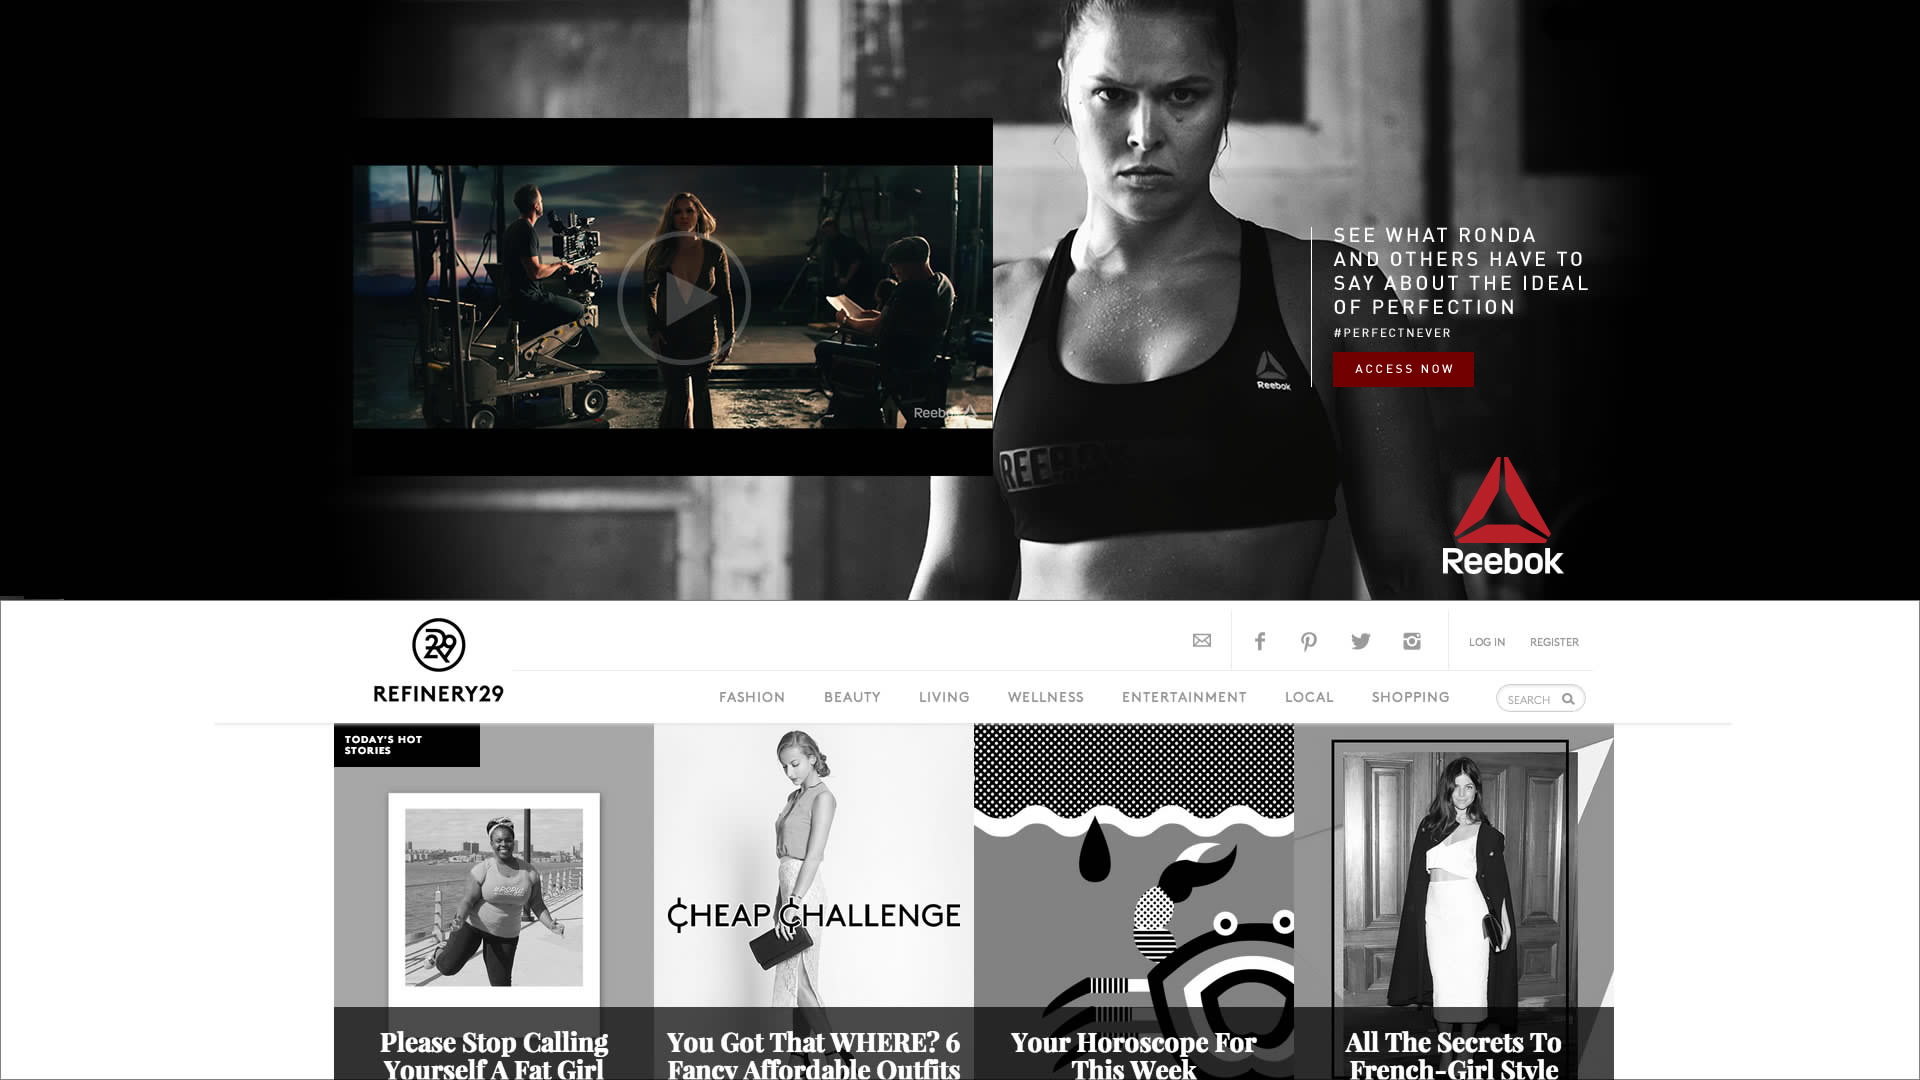 Ronda Rousey collaberation with Reebok for , the perfect never campaign